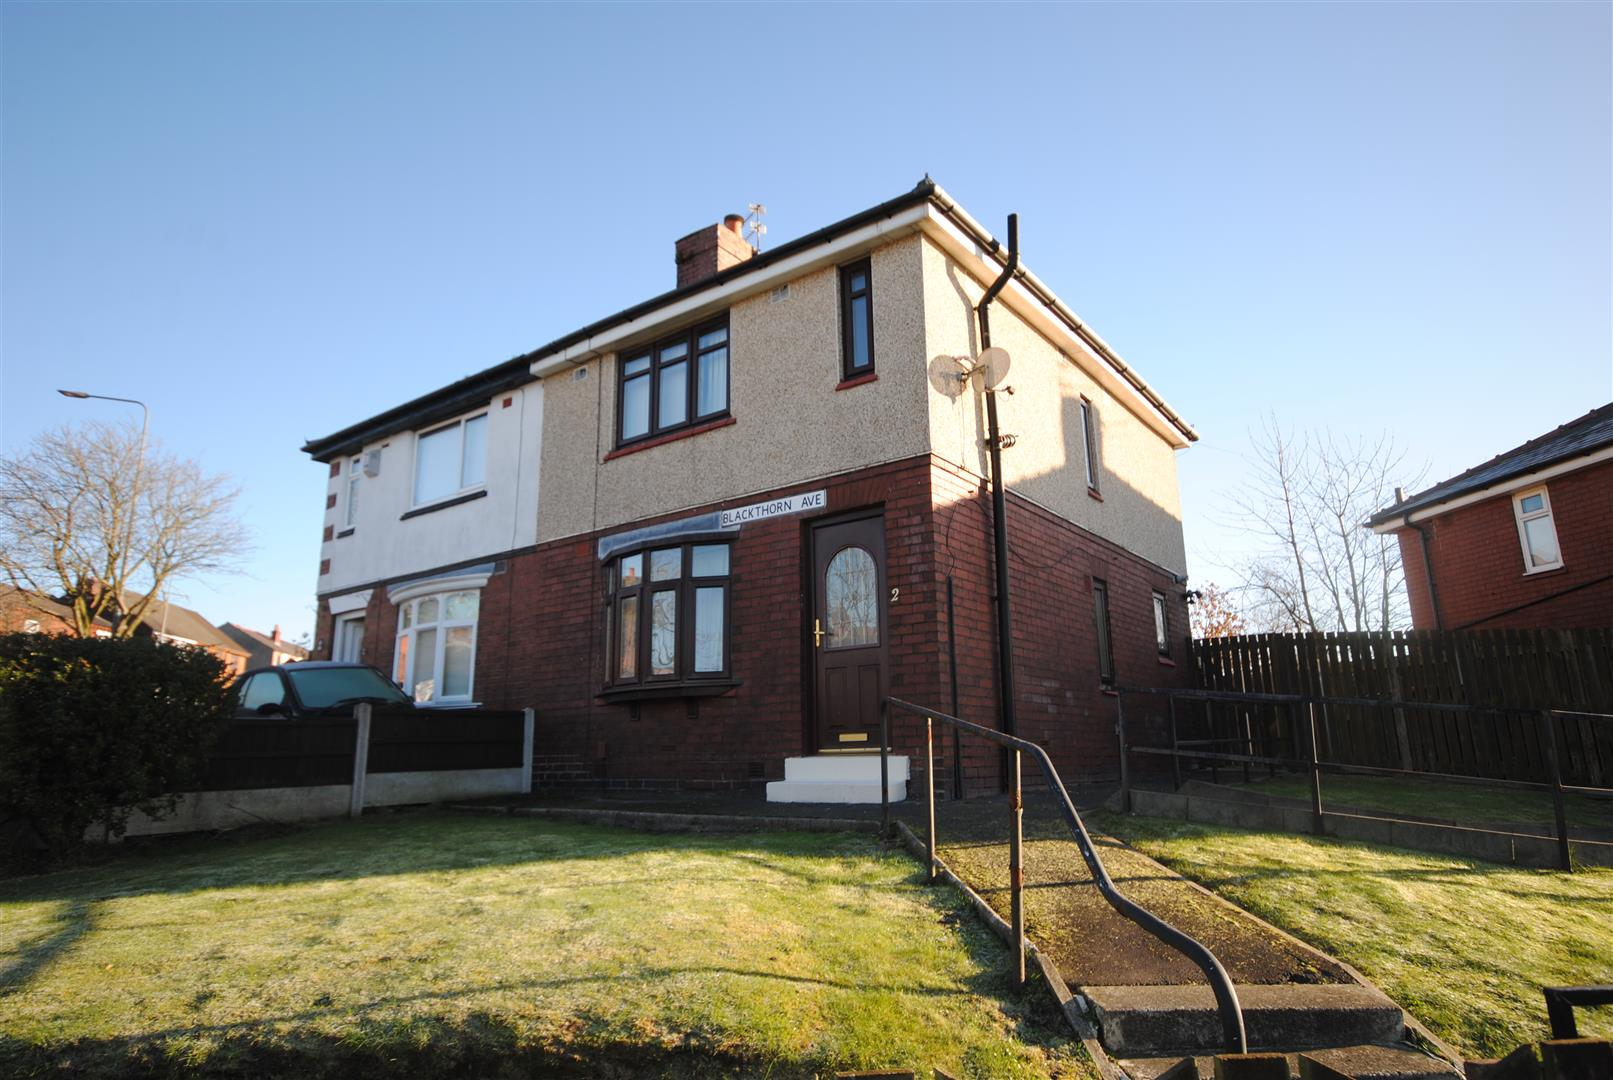 3 Bedrooms Semi Detached House for sale in Blackthorn Avenue, Beech Hill, Wigan